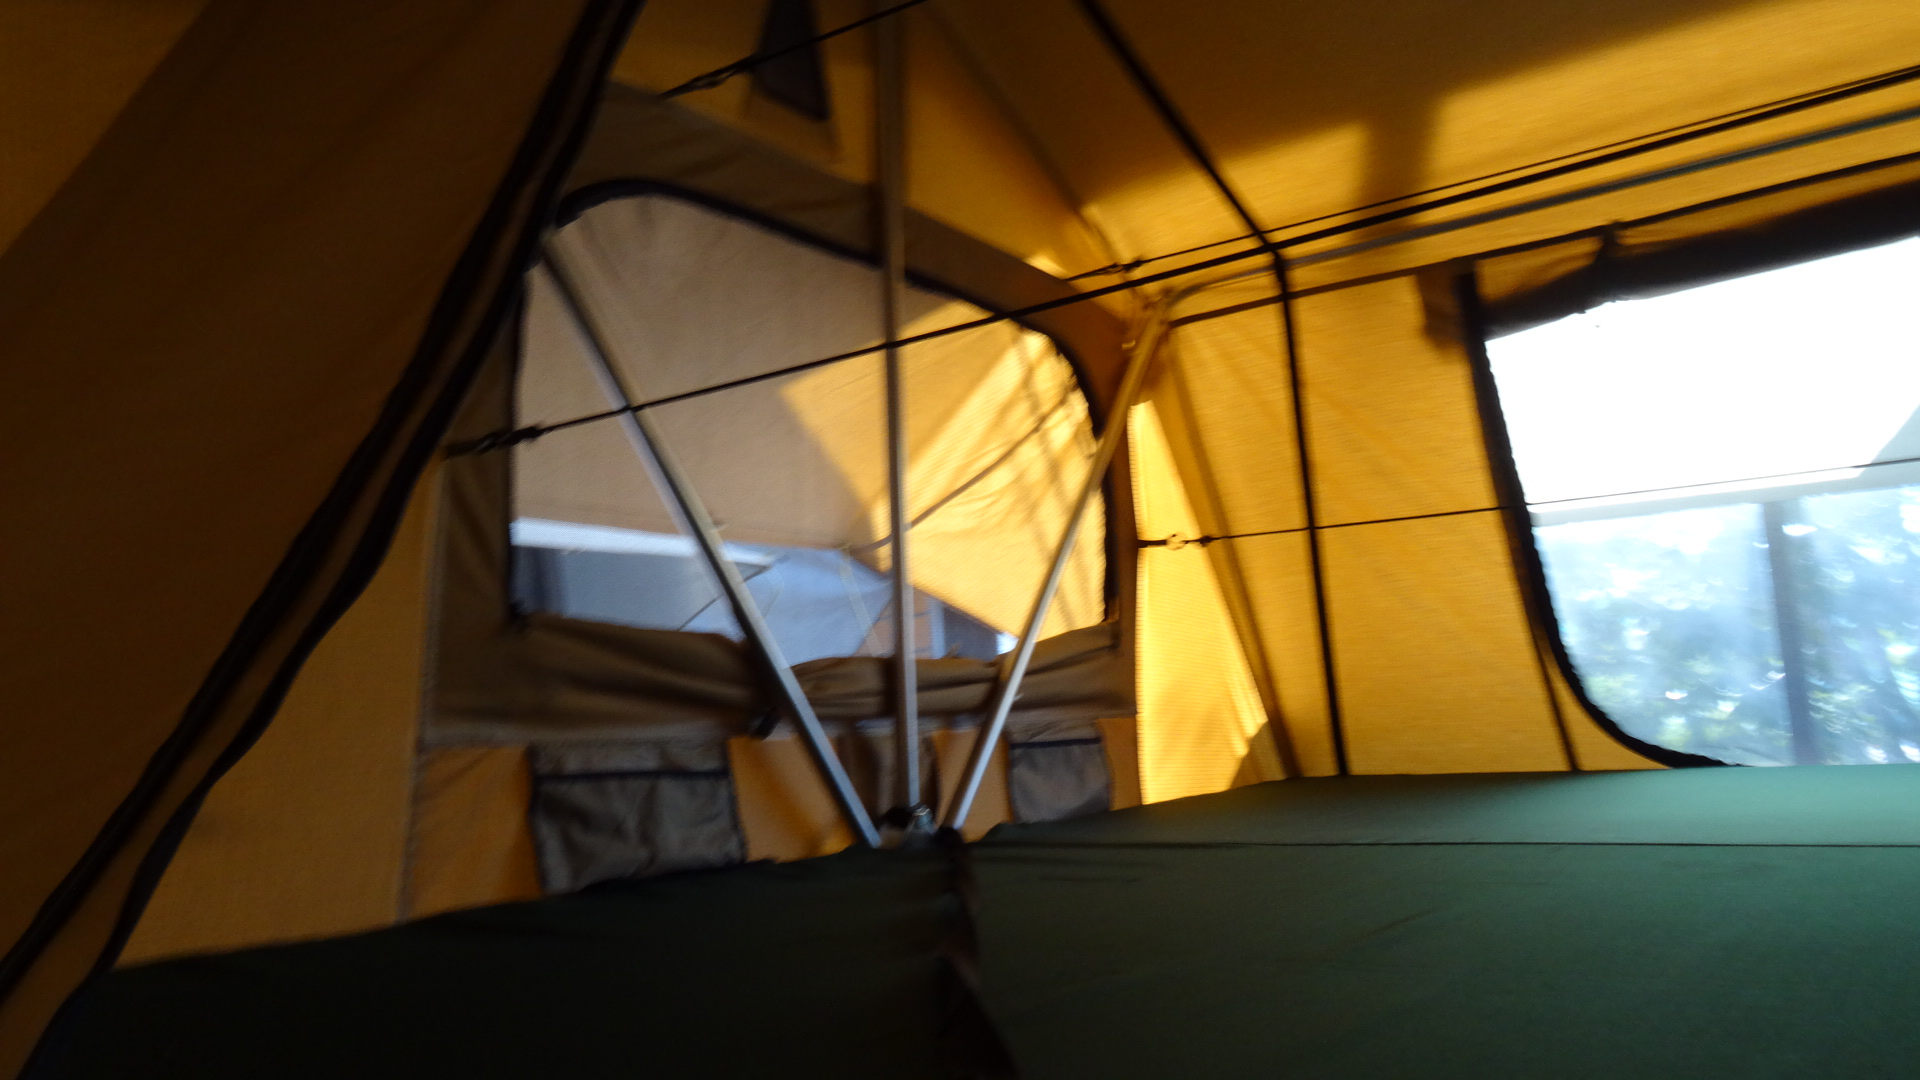 Roof Top Tent 1.8 Superior interior & SUPERIOR Roof Top Tent 1.8m - Camper Trailers u0026 Rooftop Tents